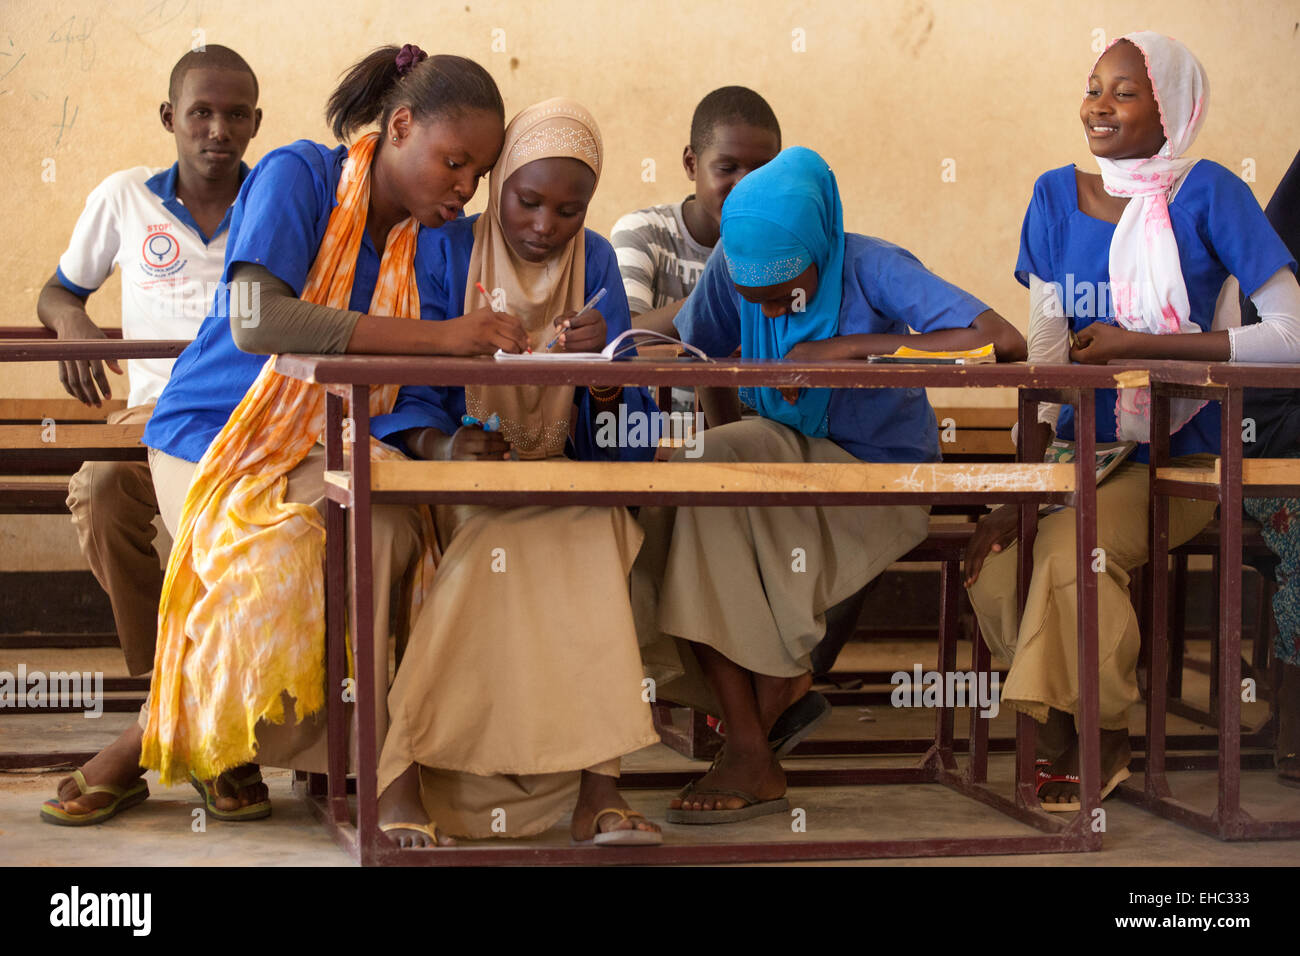 Members of the 'Our Future' children's club at the Secondary School, Tera, west Niger. 